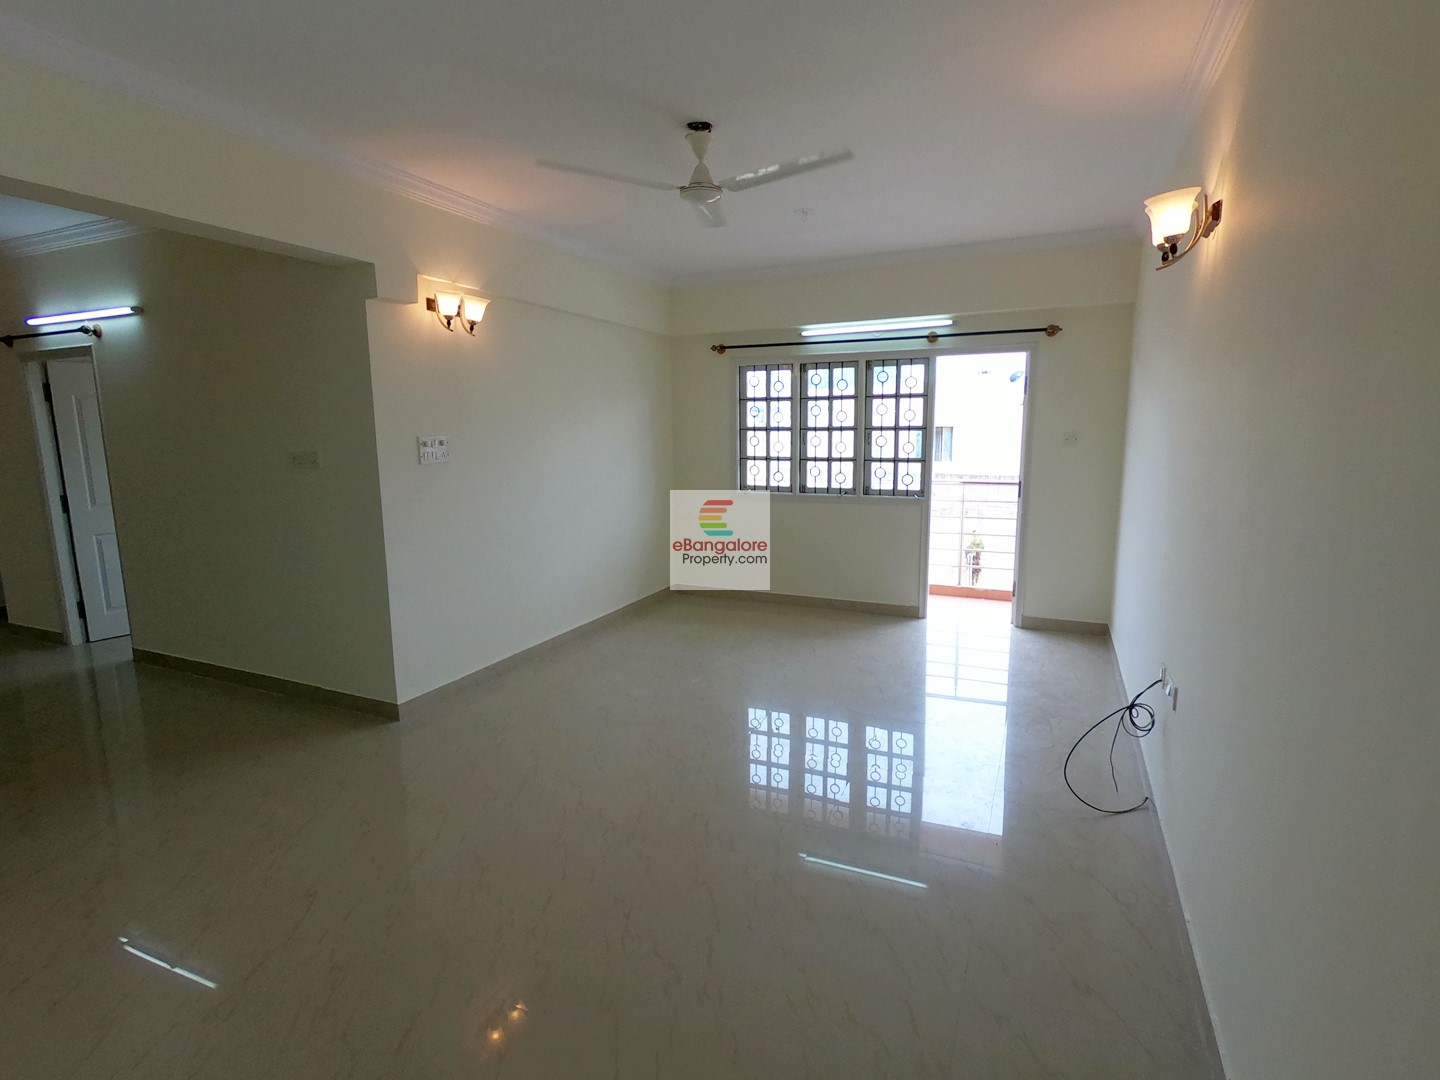 Benson Town – 2BHK Flat for Sale, 1310 Sqft – Prime Locality, Just 2 KM from Fun World